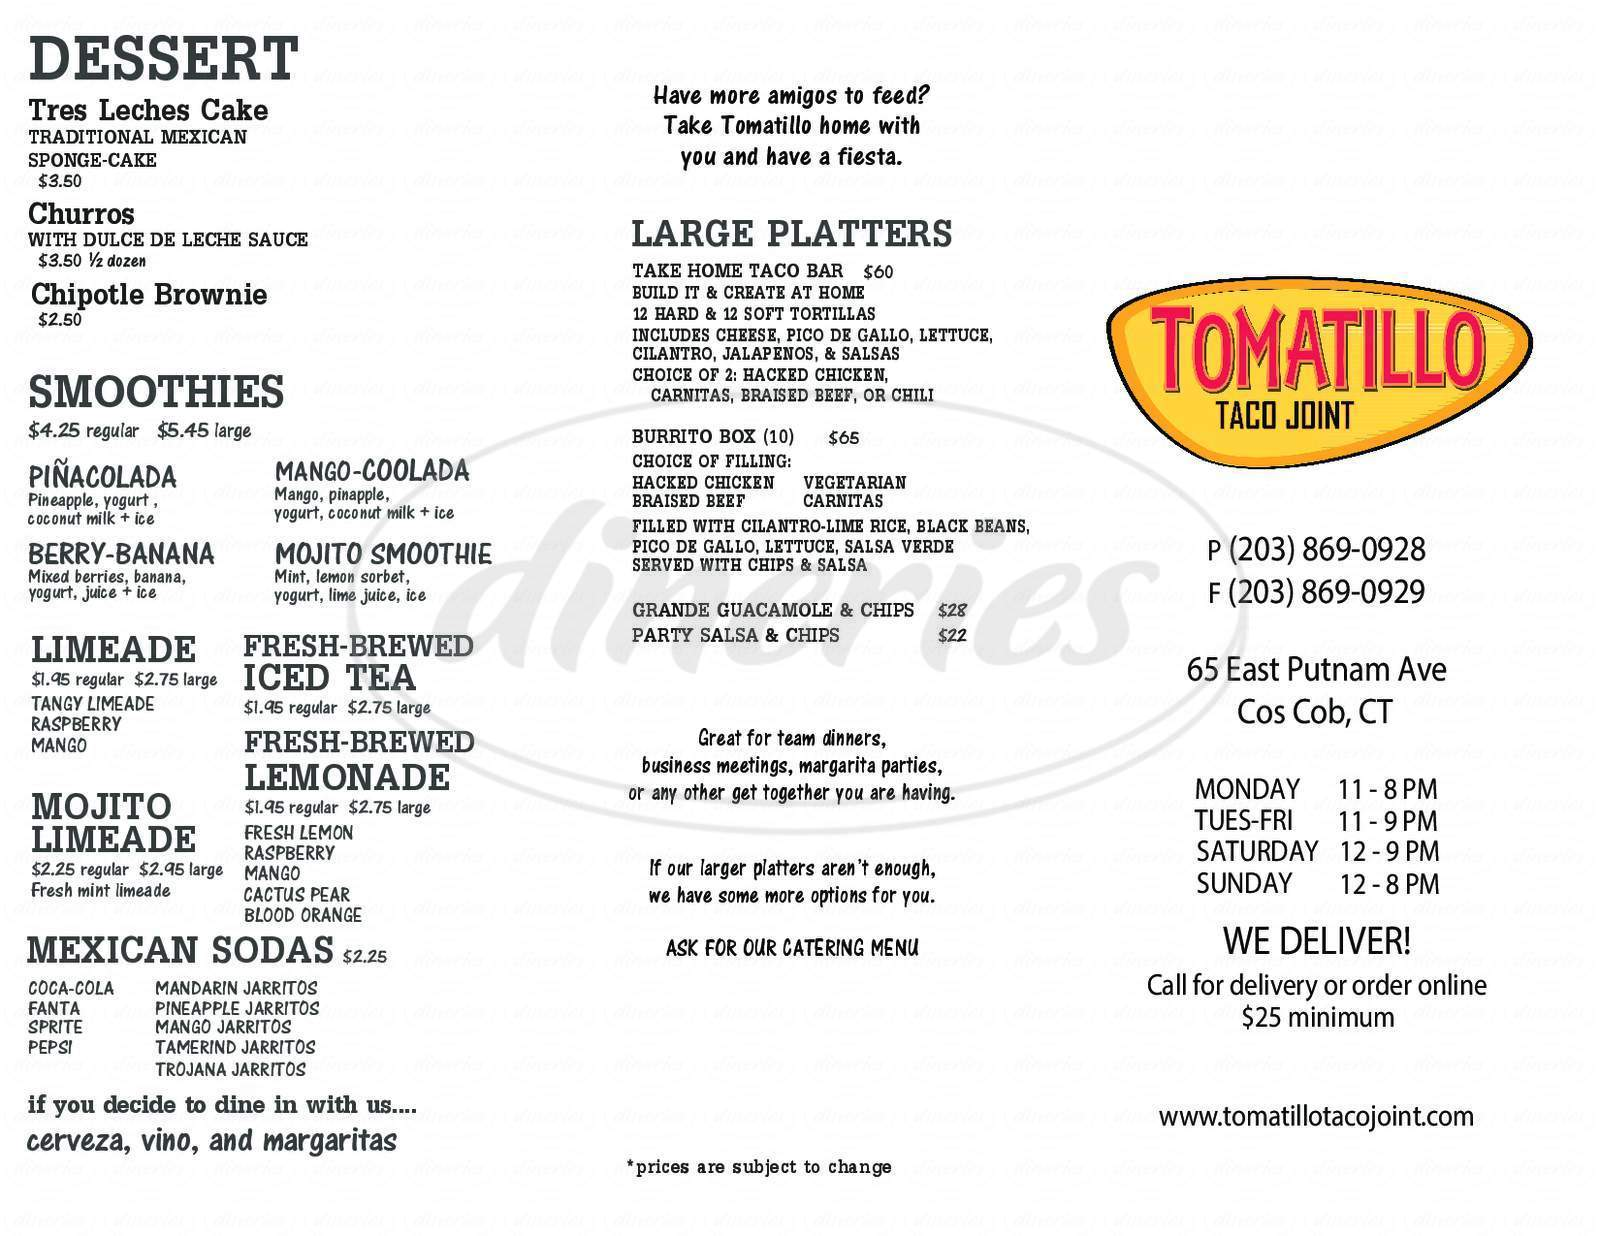 menu for Tomatillo Taco Joint